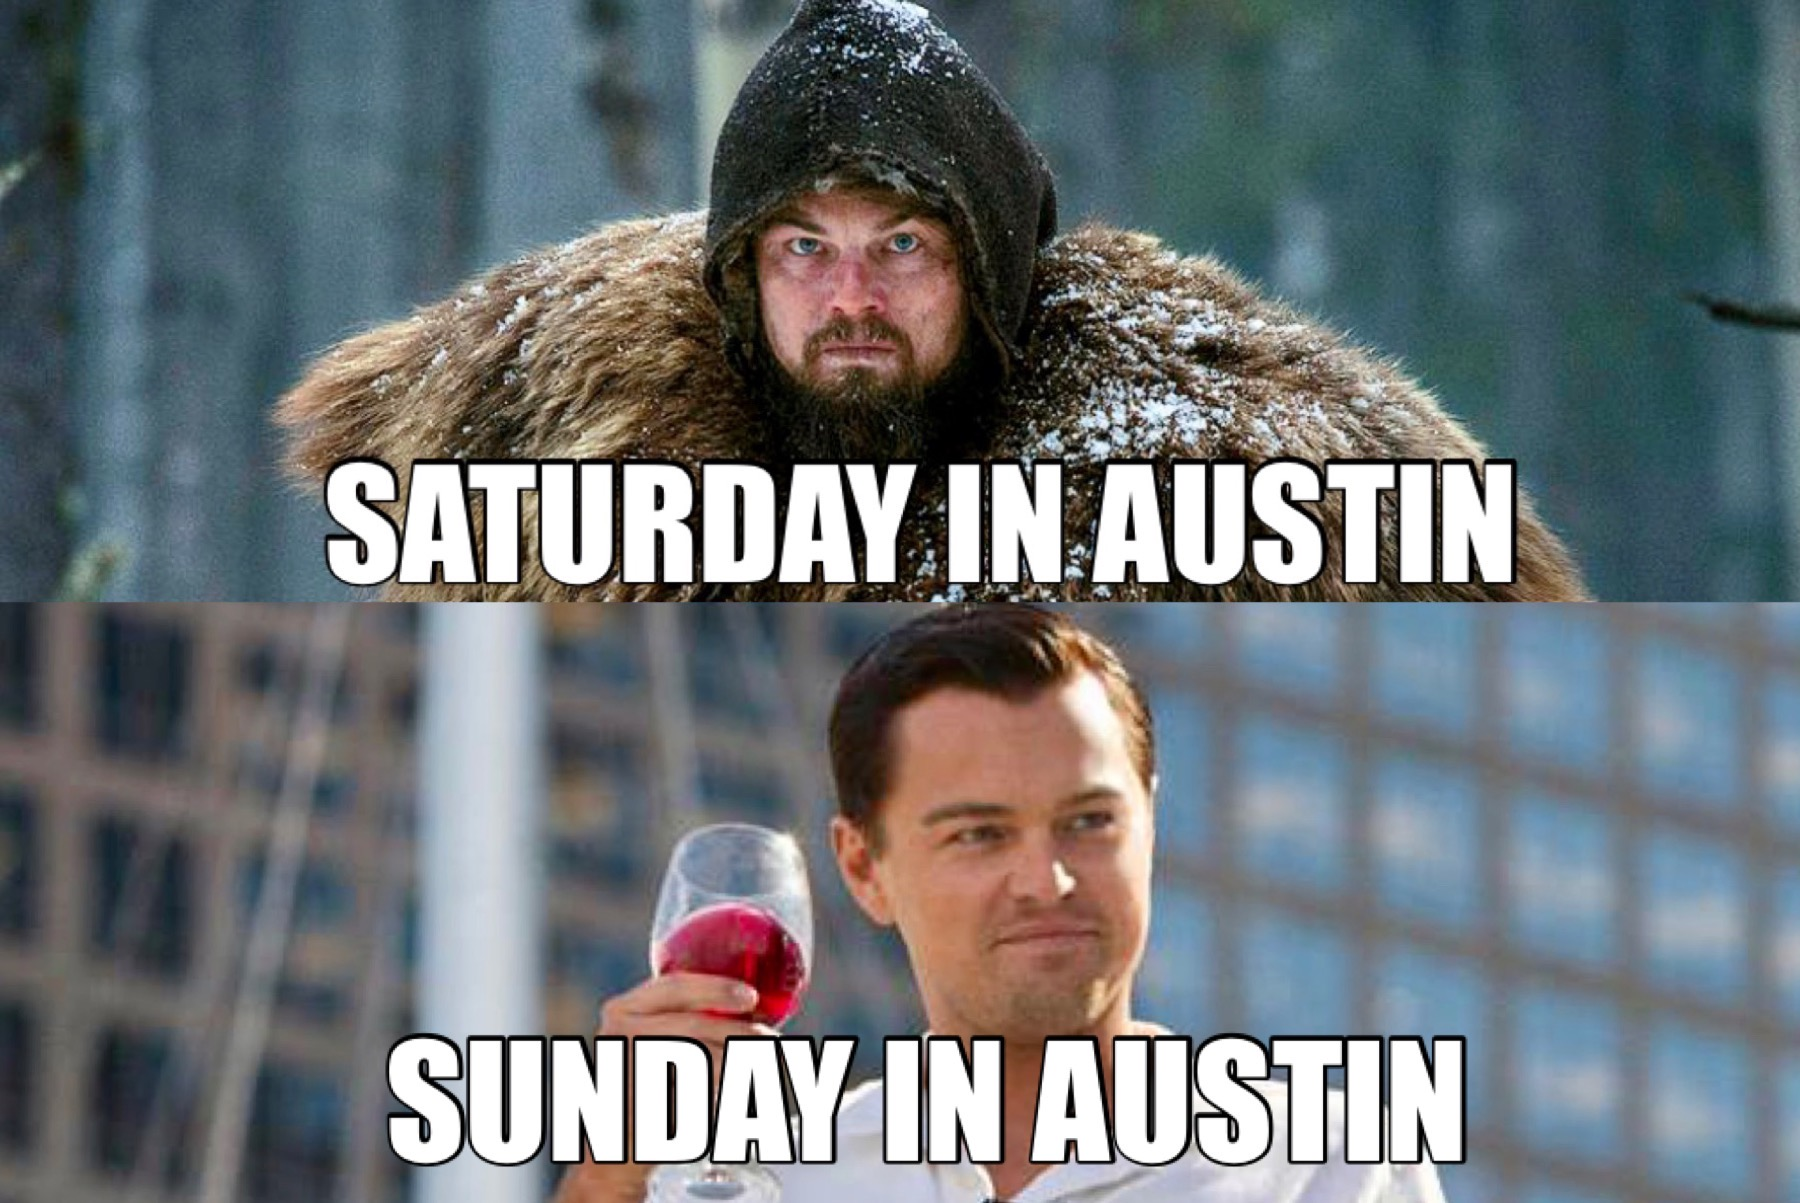 Austin Com These Memes Illustrate Just How Weird Austin Texas Weather Is